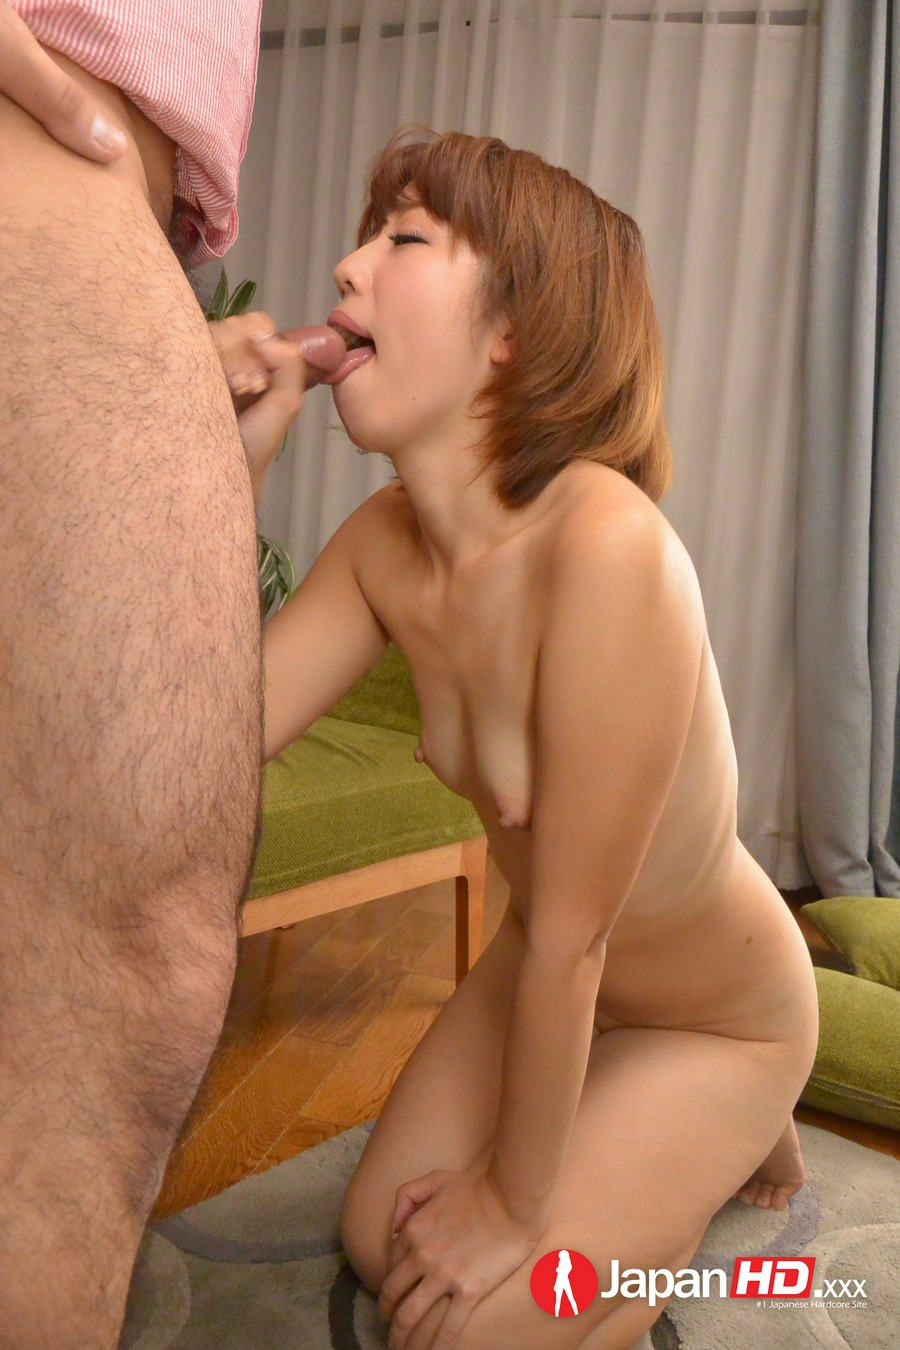 Dorado hot japanese girls young xxx bekinslet nude sex